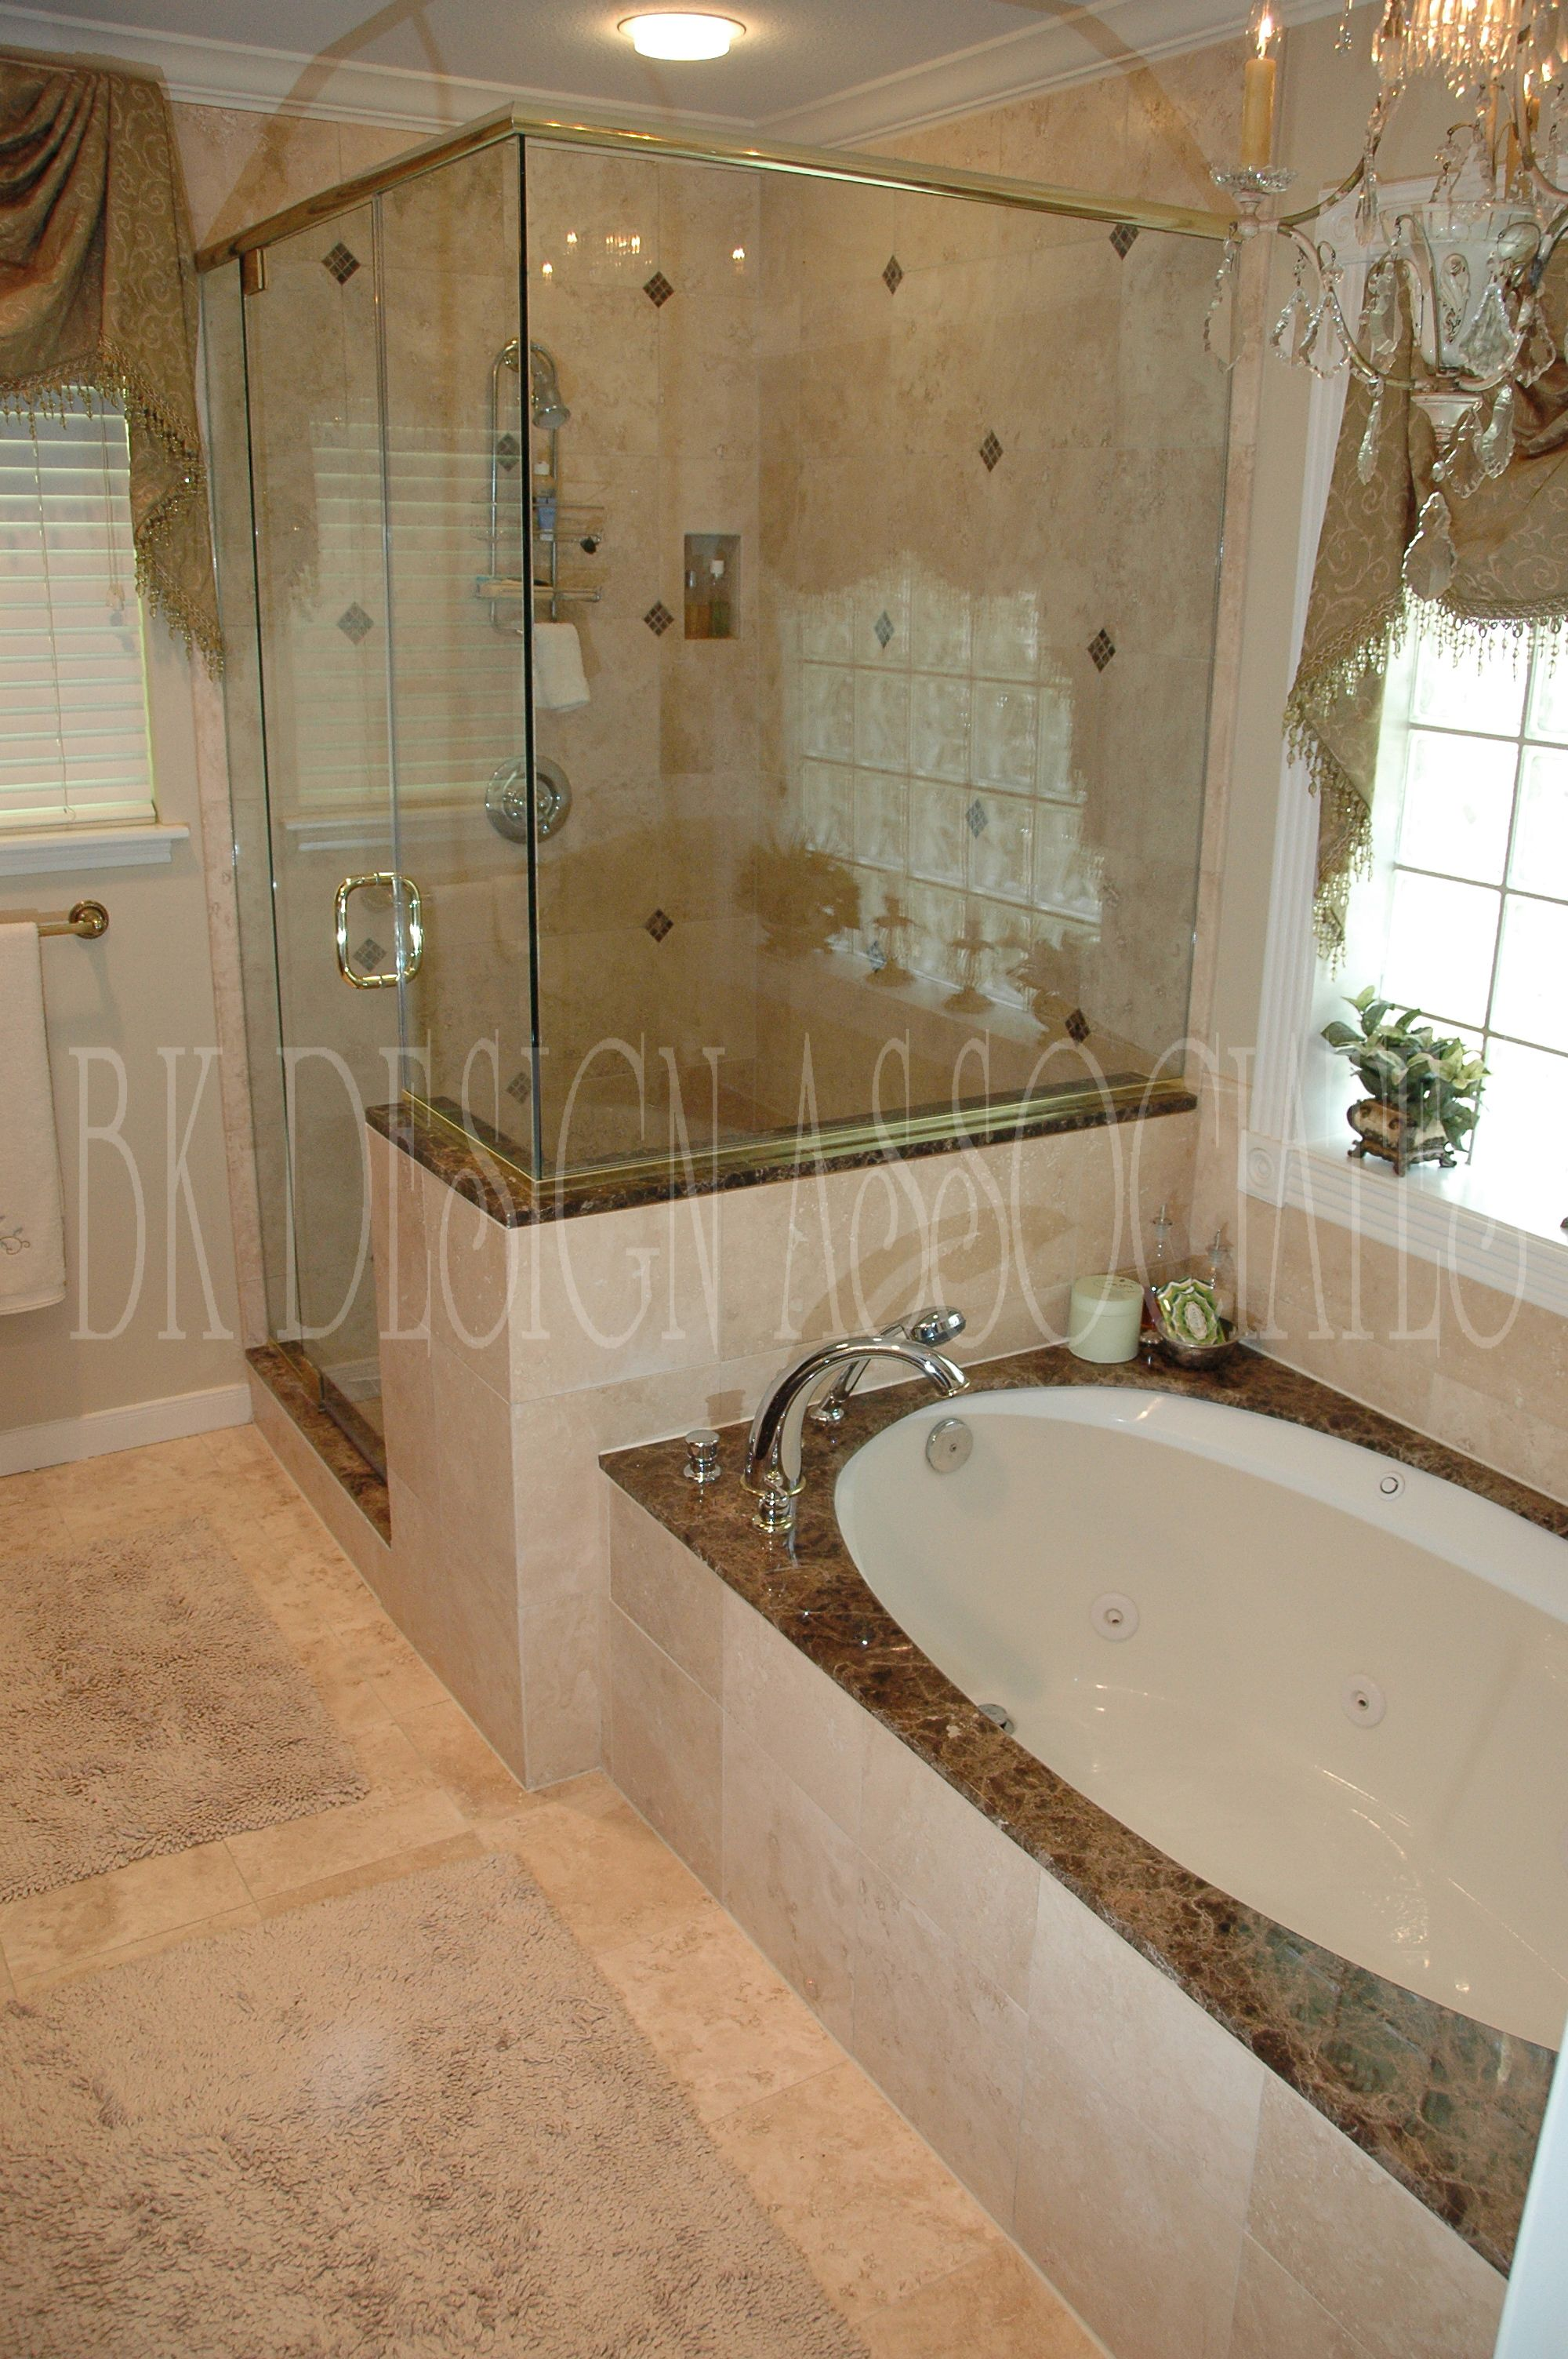 im totally gutting my master bath i have attached a proposed redesign - Bathrooms Showers Designs